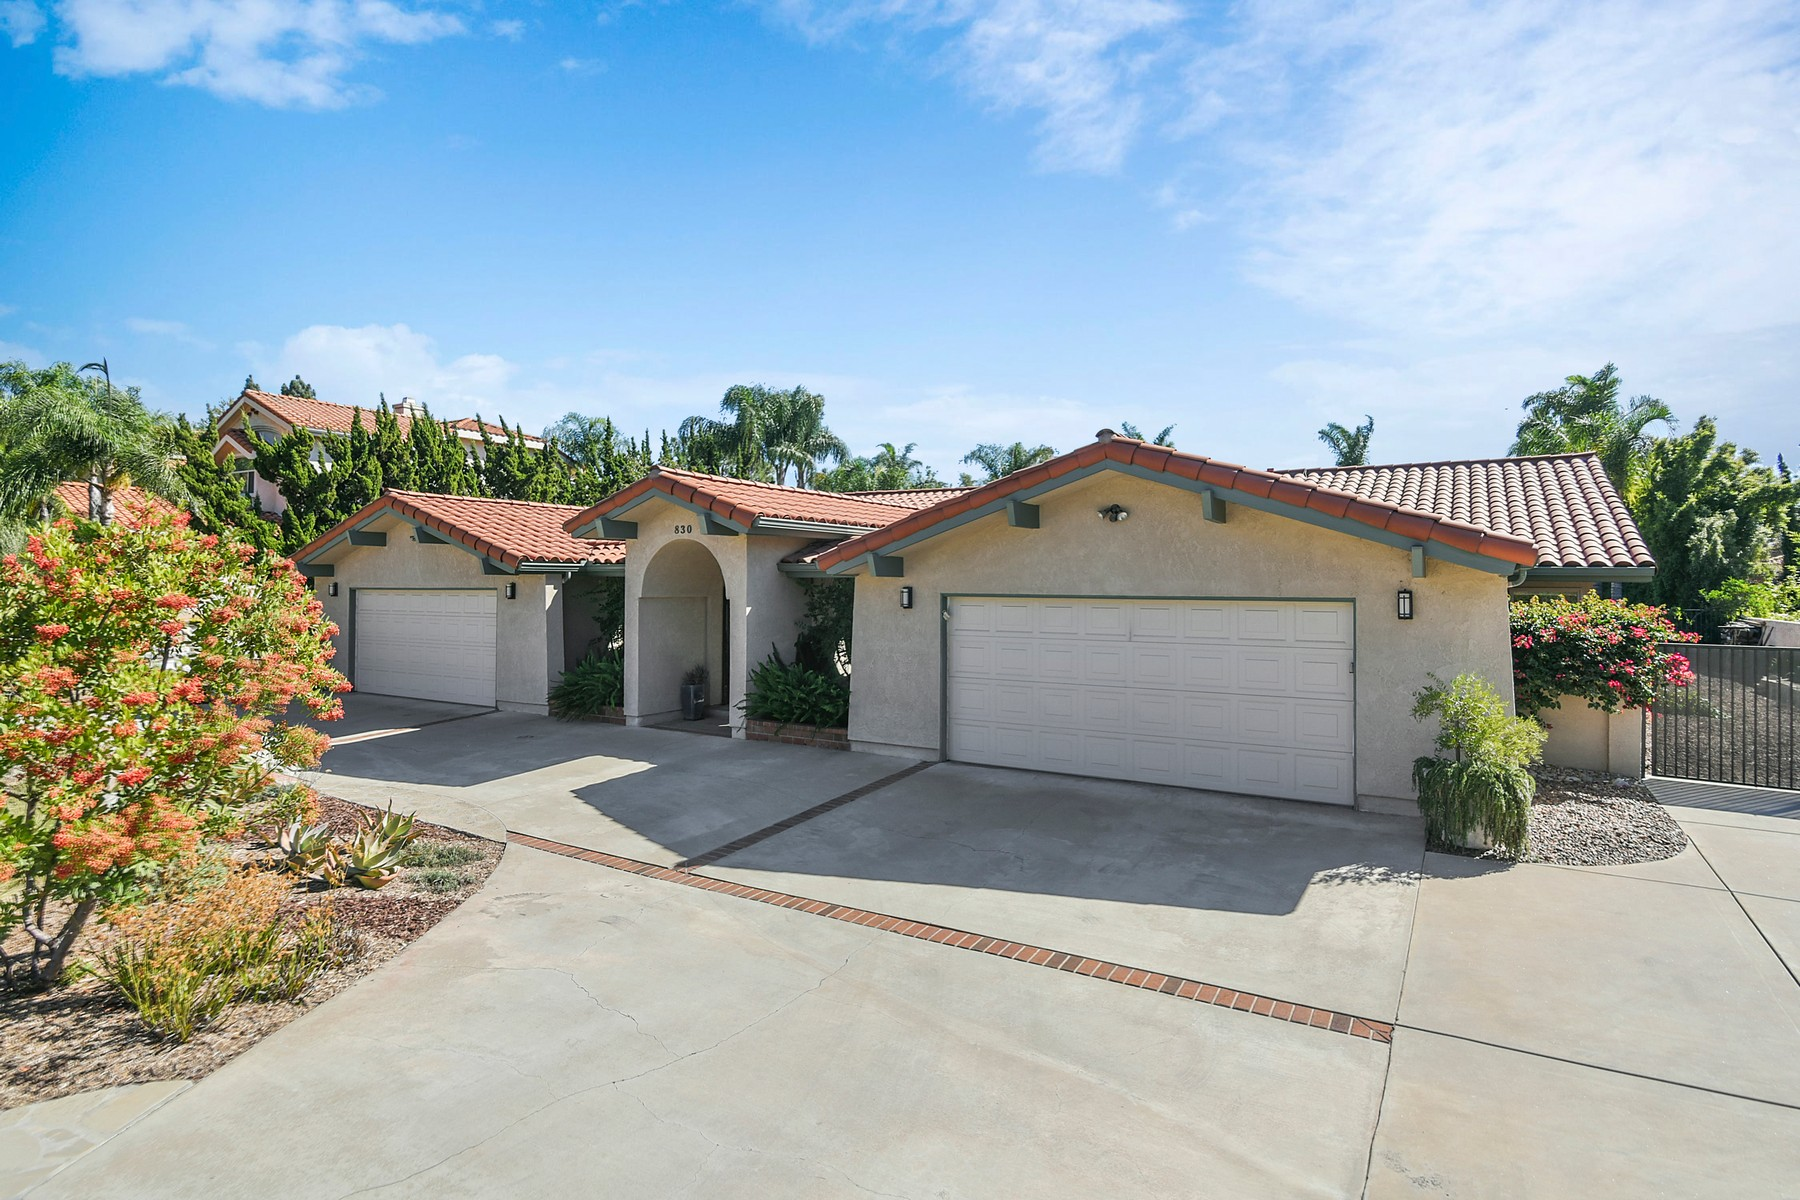 Single Family Homes for Sale at 830 Deep Springs Drive, Claremont, CA 91711 830 Deep Springs Drive Claremont, California 91711 United States